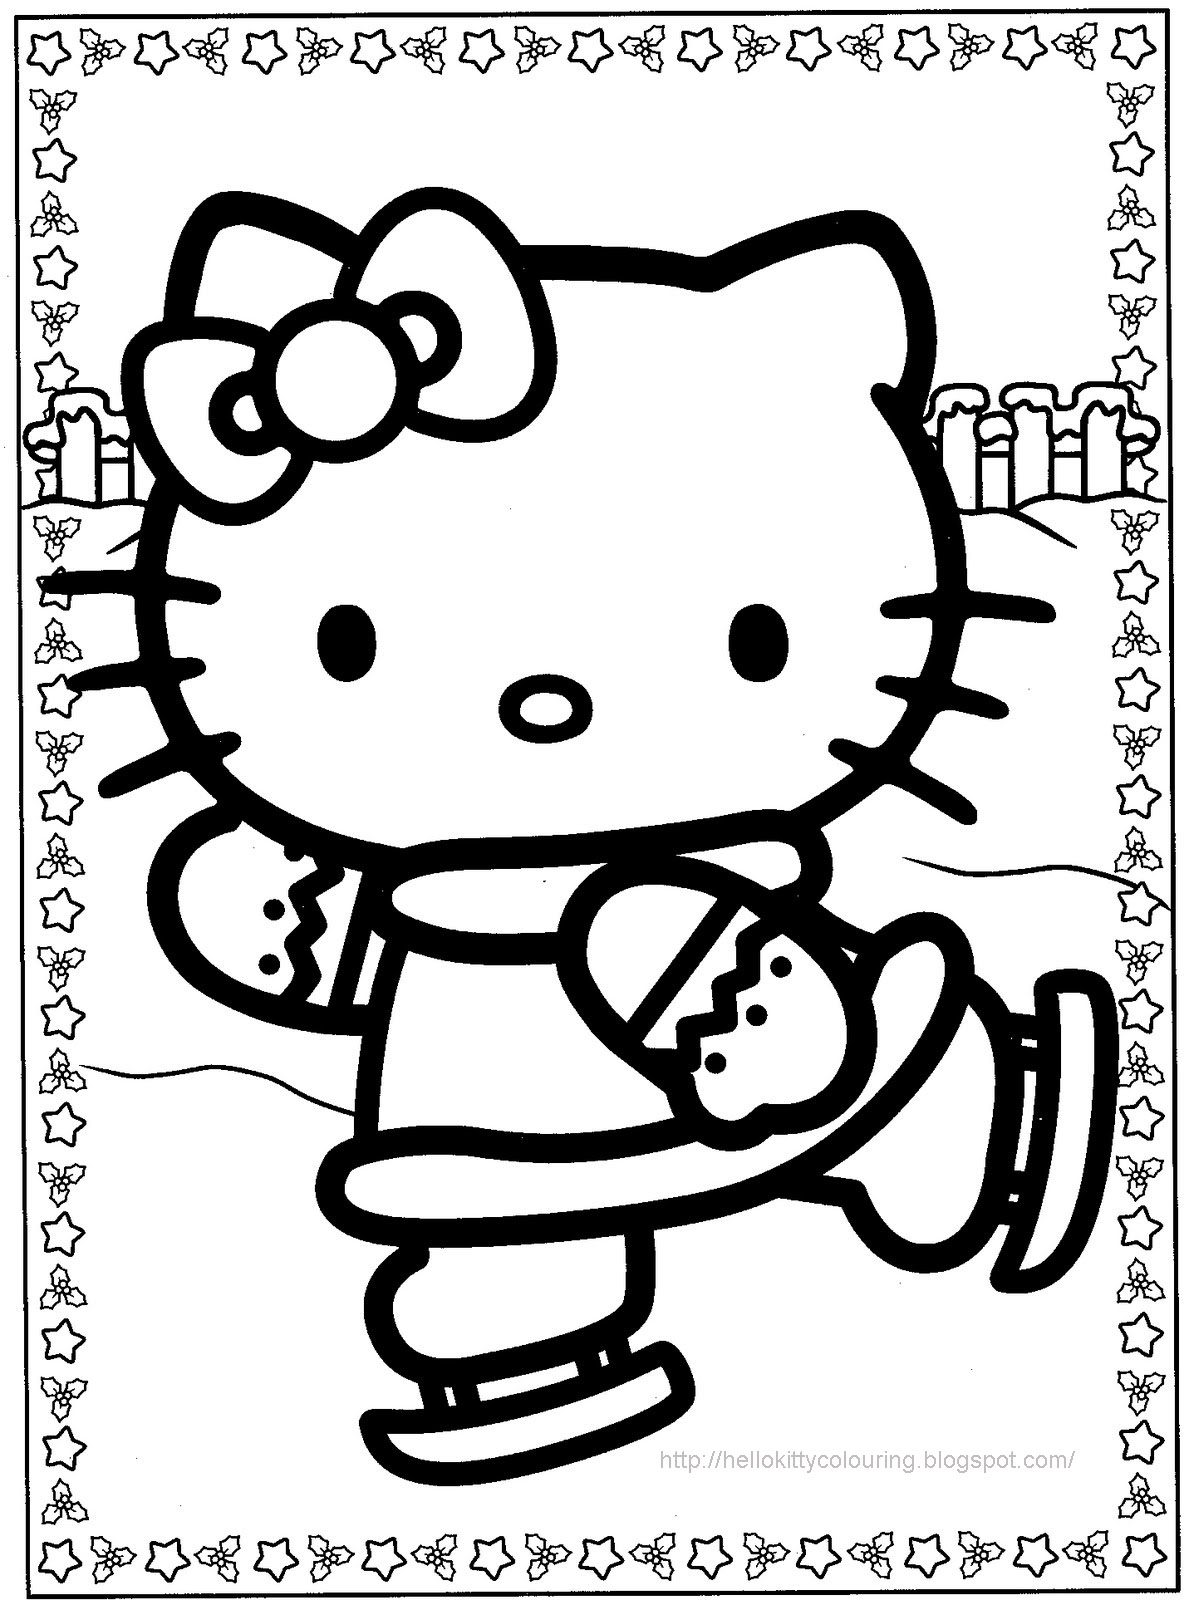 hello kitty coloring book pages cool hello kitty coloring pages download and print for free pages book hello coloring kitty